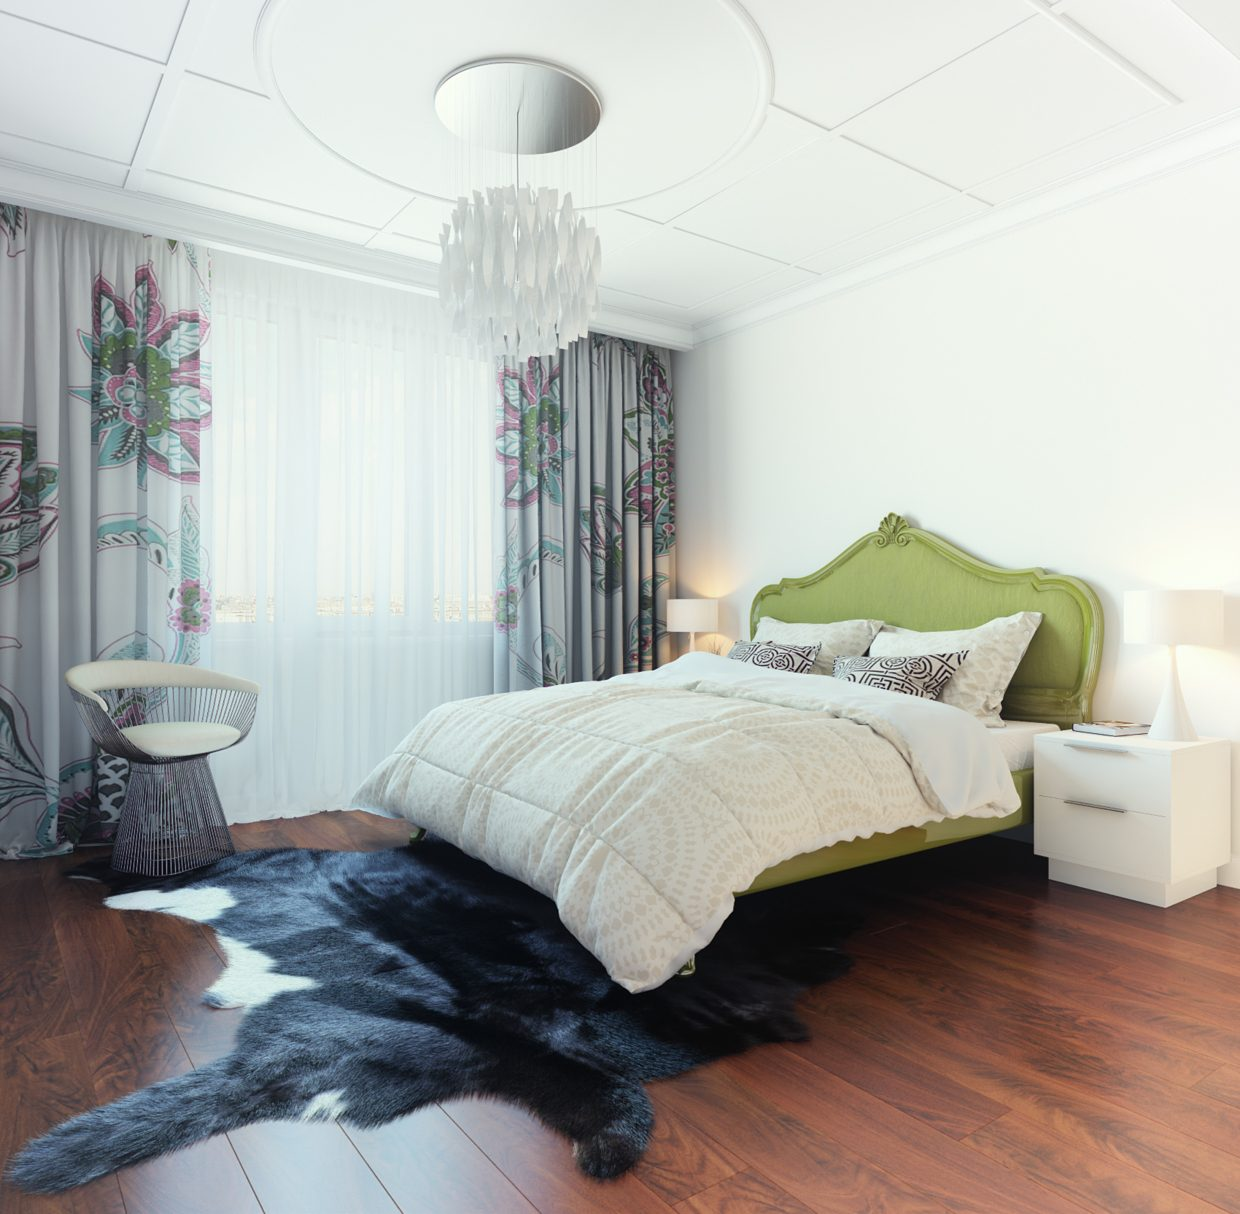 Bedroom design for woman